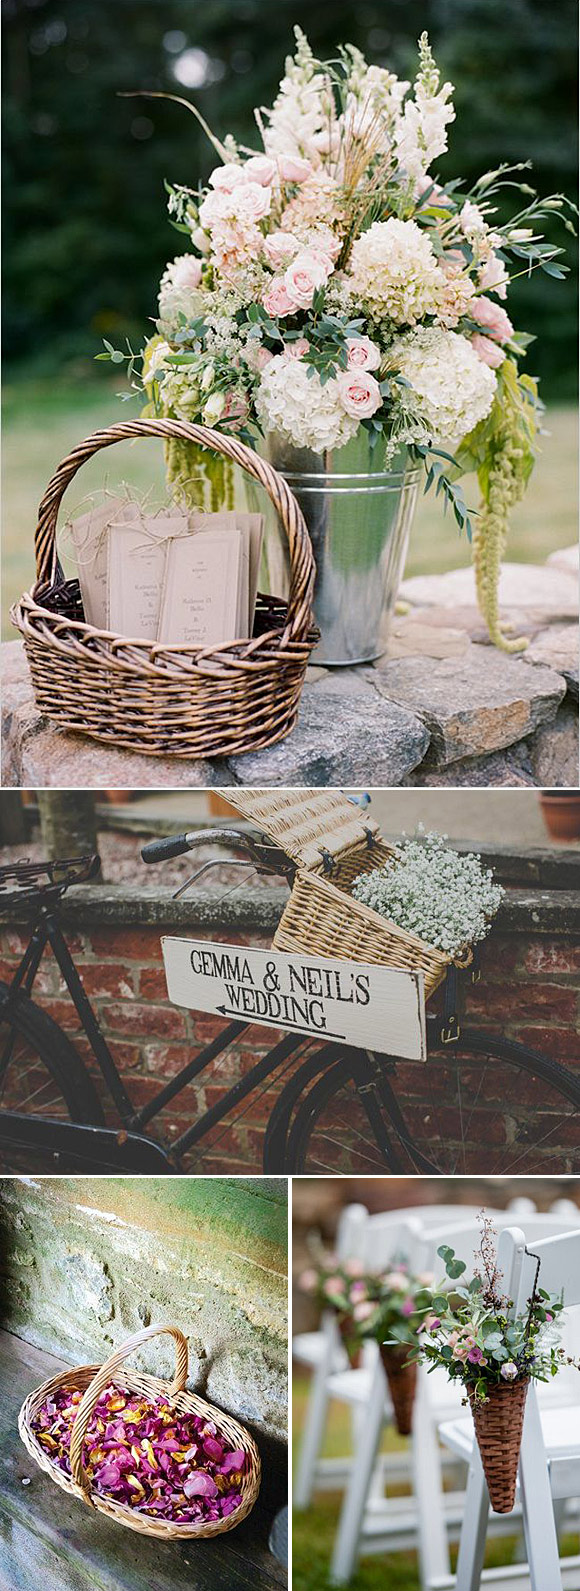 Canastas ideas para decorar tu boda foro organizar for Decoracion de cestas